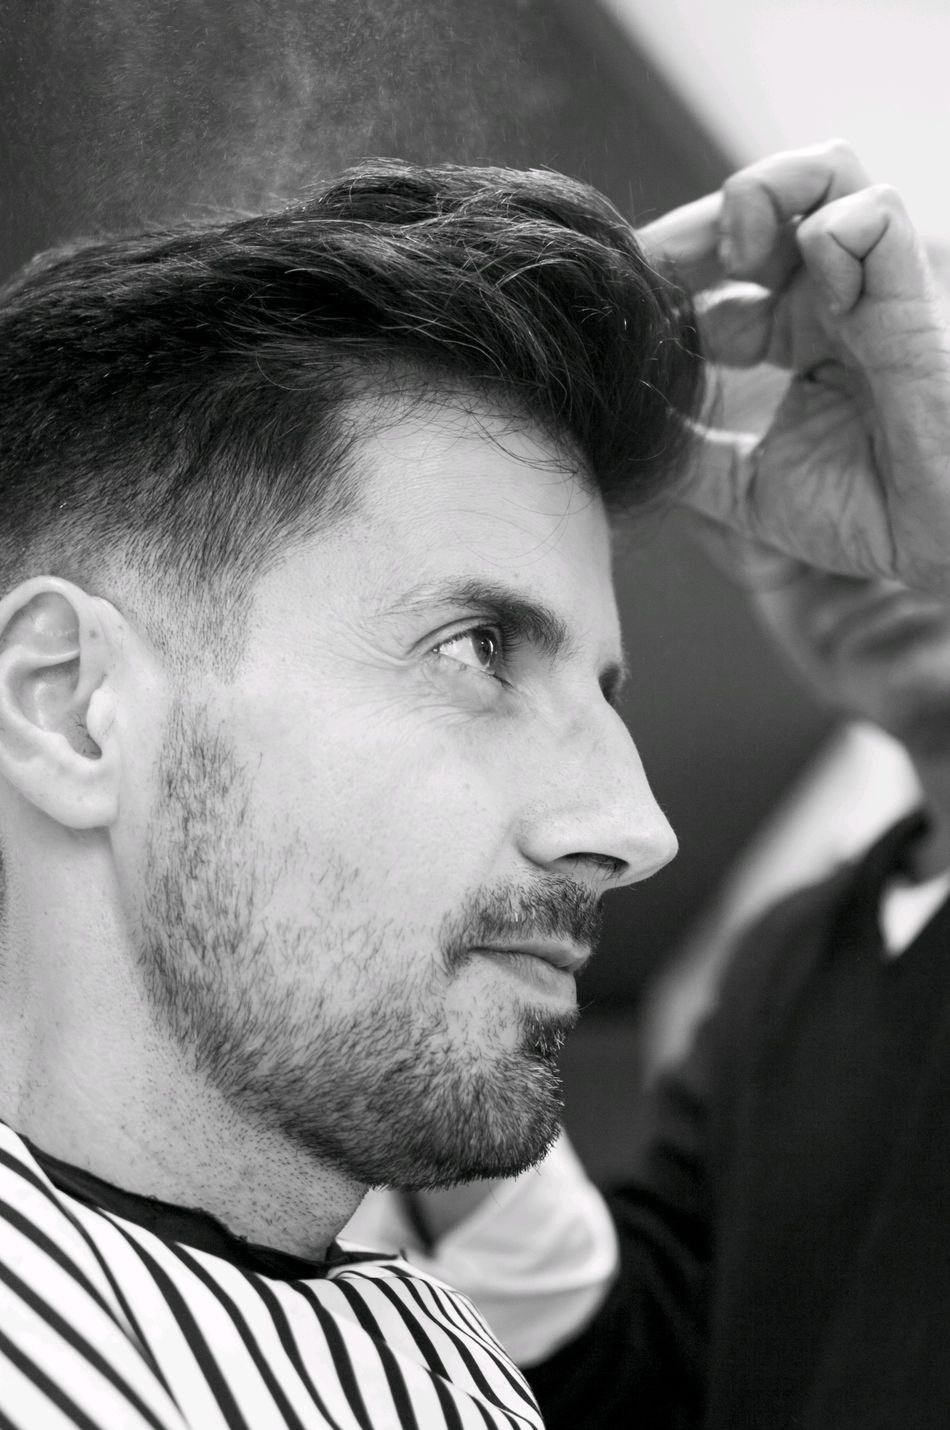 Haircut Haircut Time Hairstyle Hairdresser Close-up Hairspray BW_photography One Man Only Delfín Blanco Peluquería En Gijón Spain